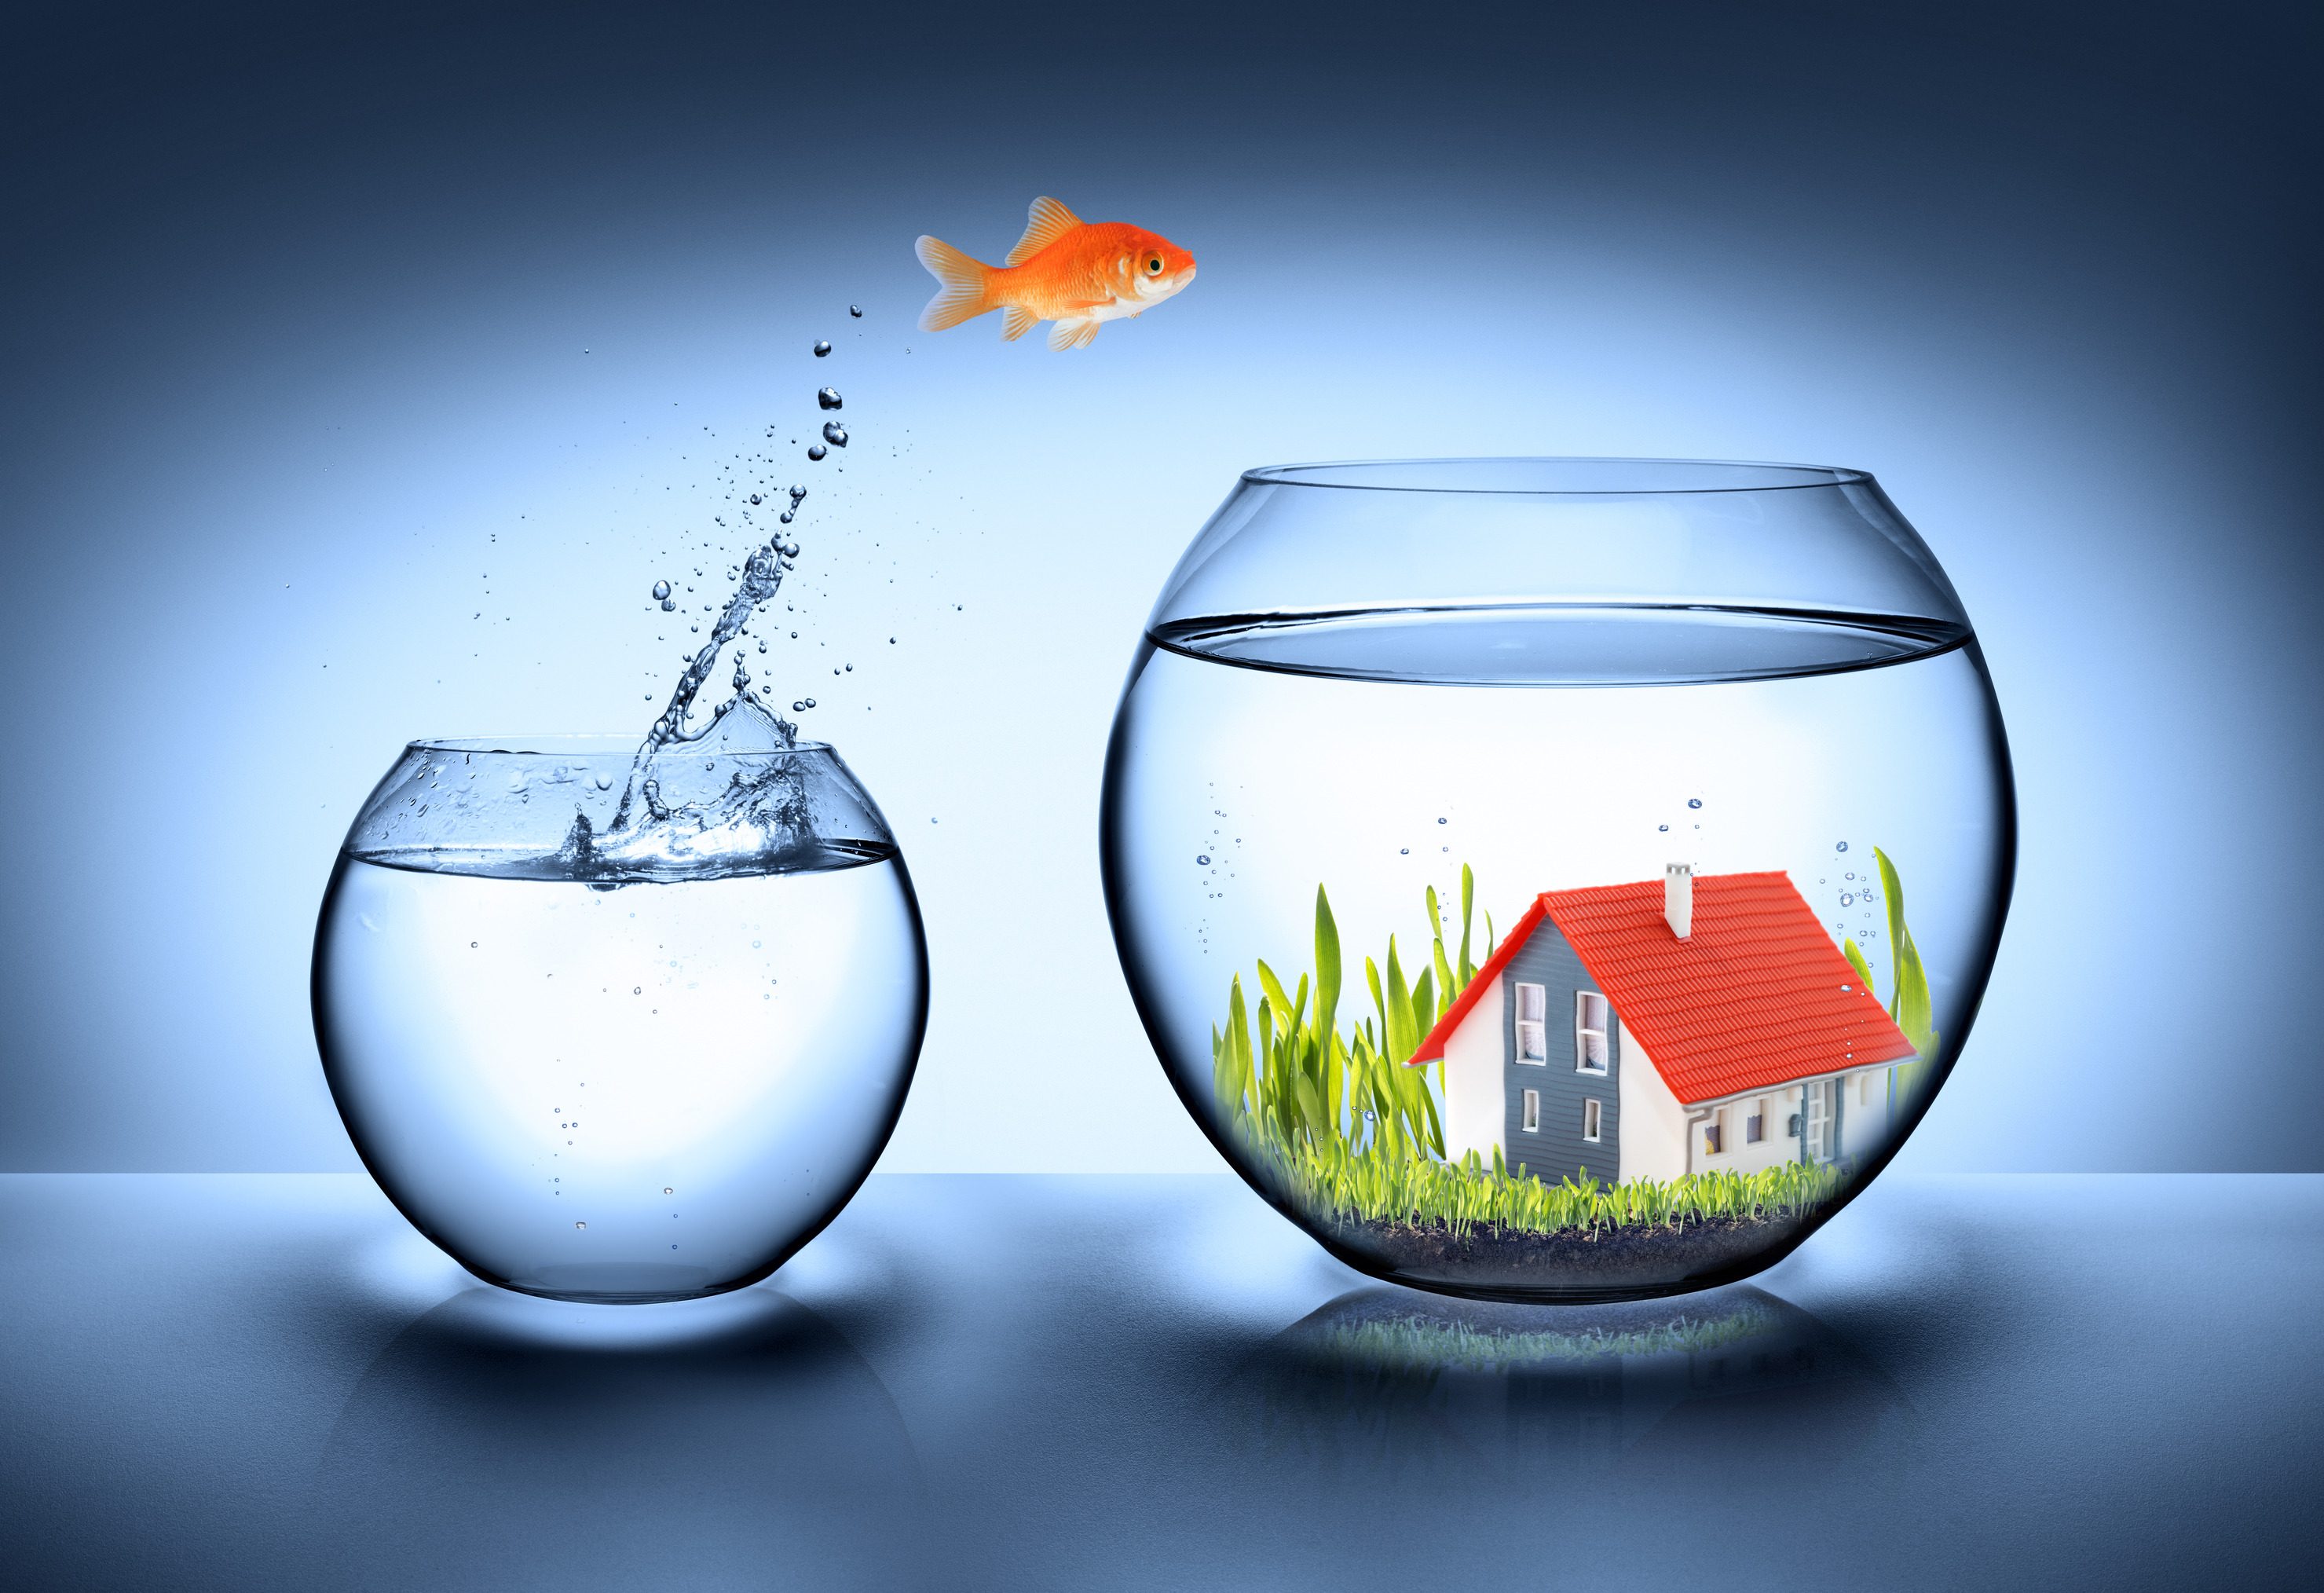 Contact | Real Estate Marketing Leads